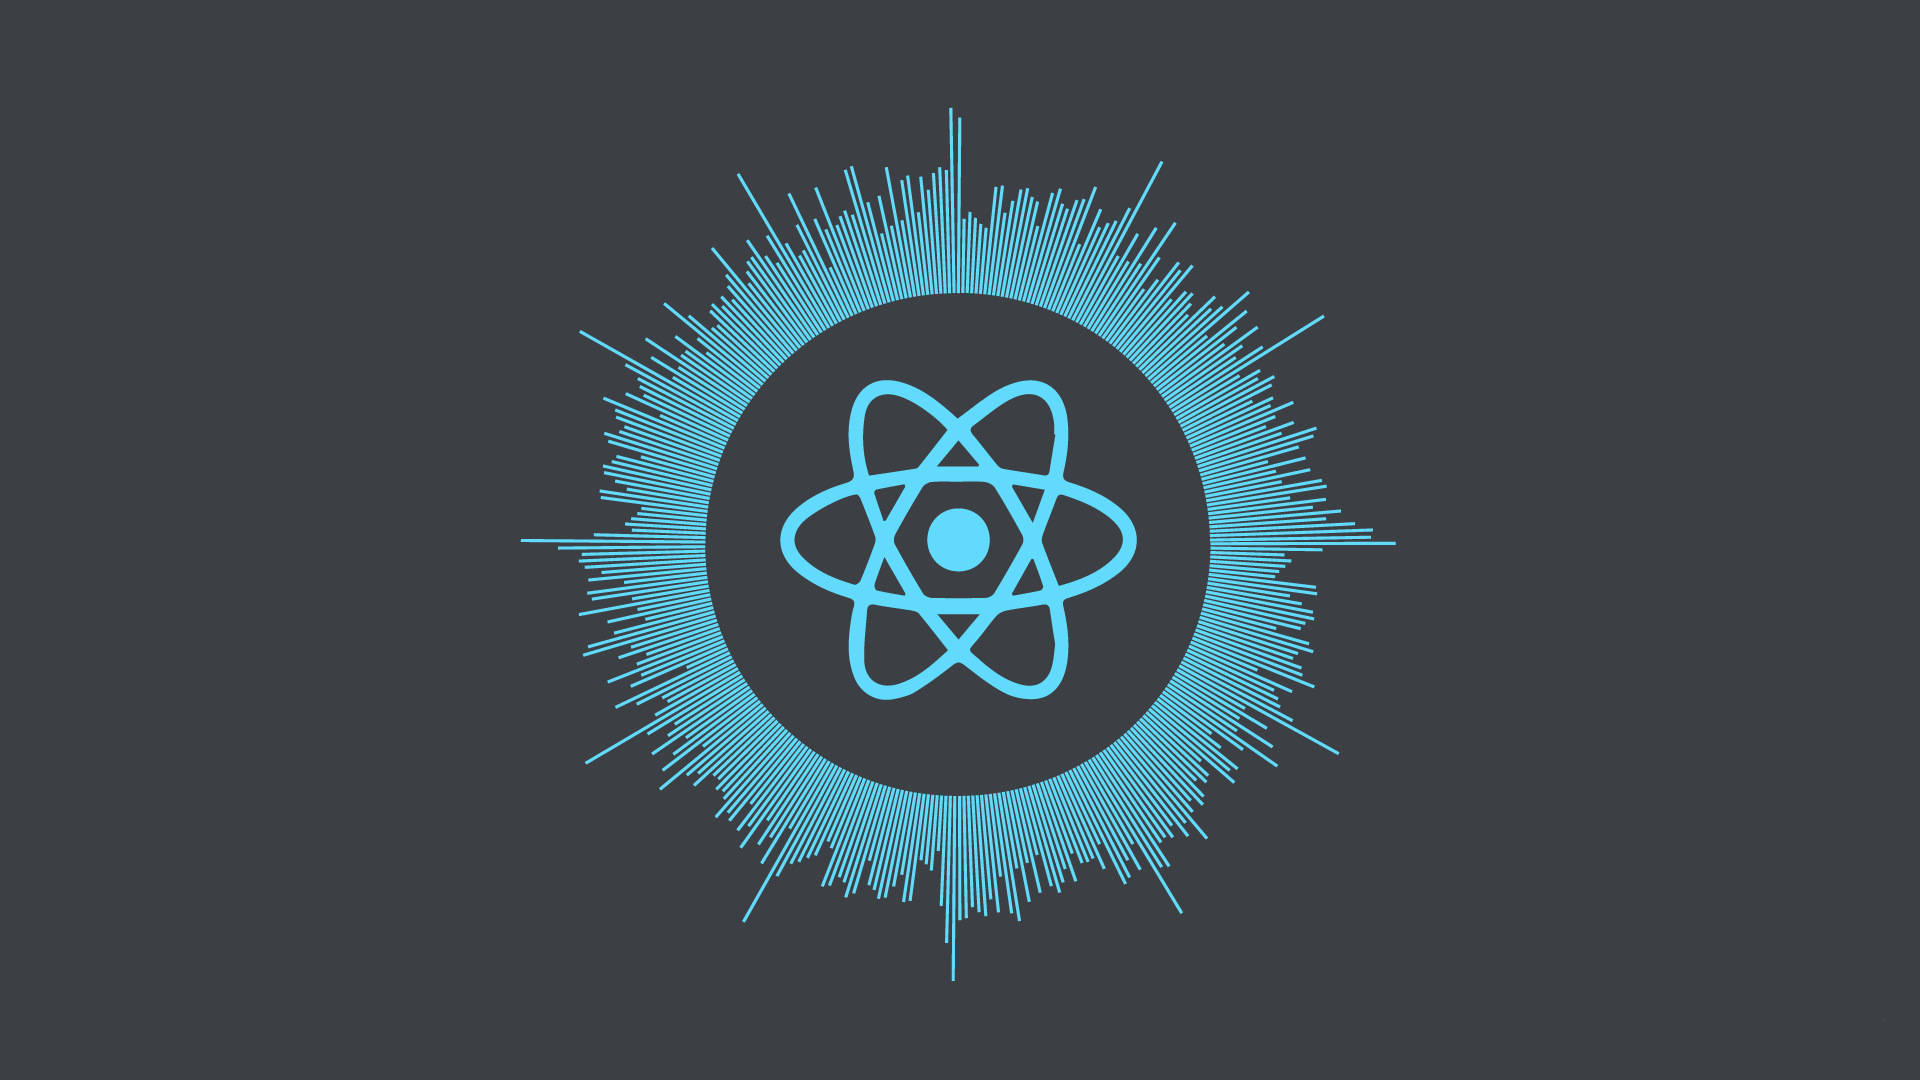 Working with React